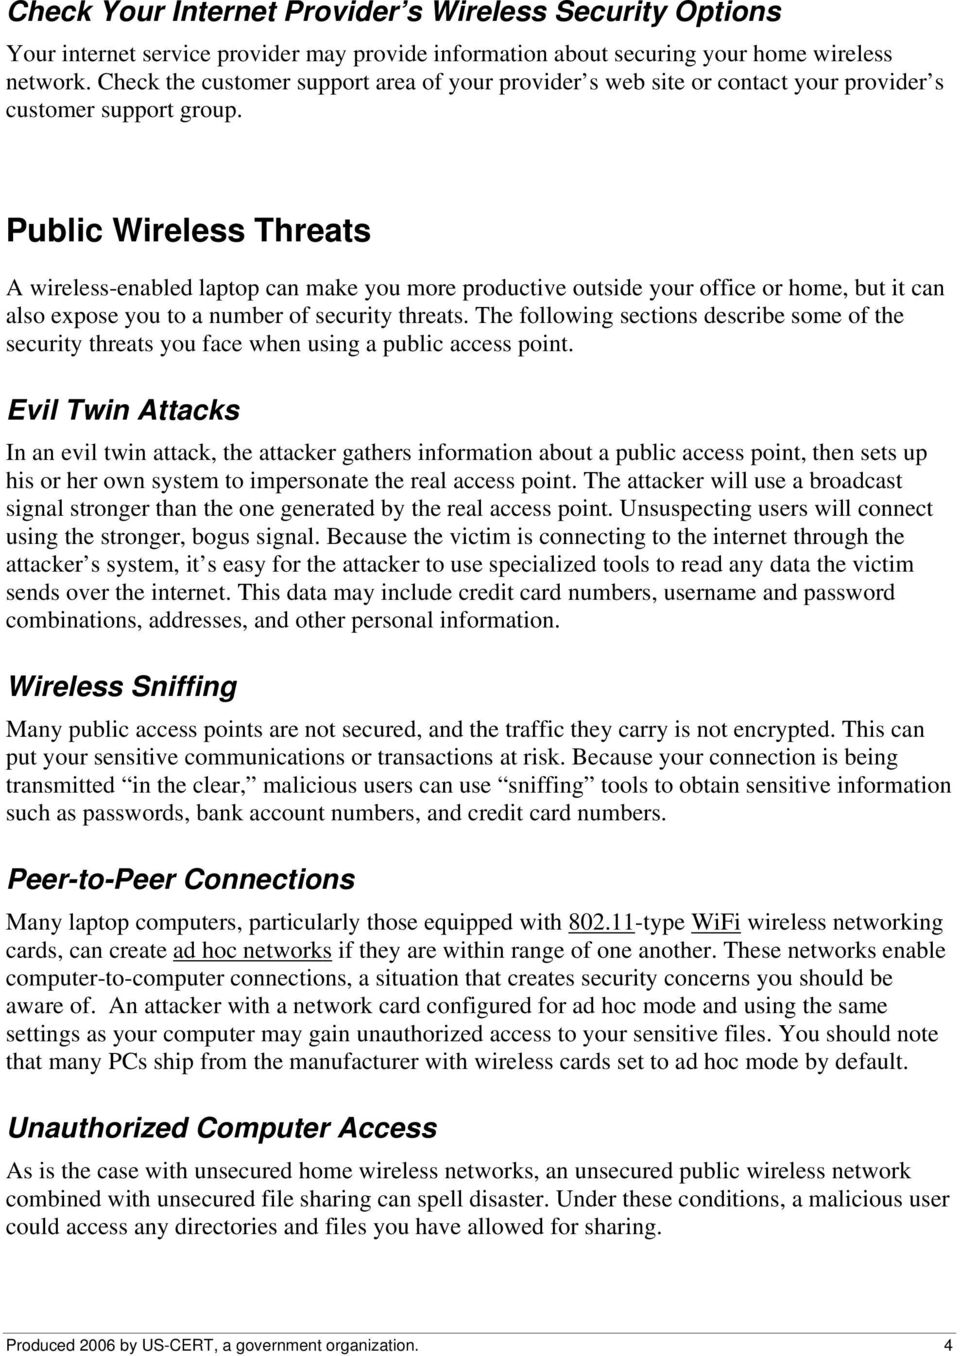 Public Wireless Threats A wireless-enabled laptop can make you more productive outside your office or home, but it can also expose you to a number of security threats.